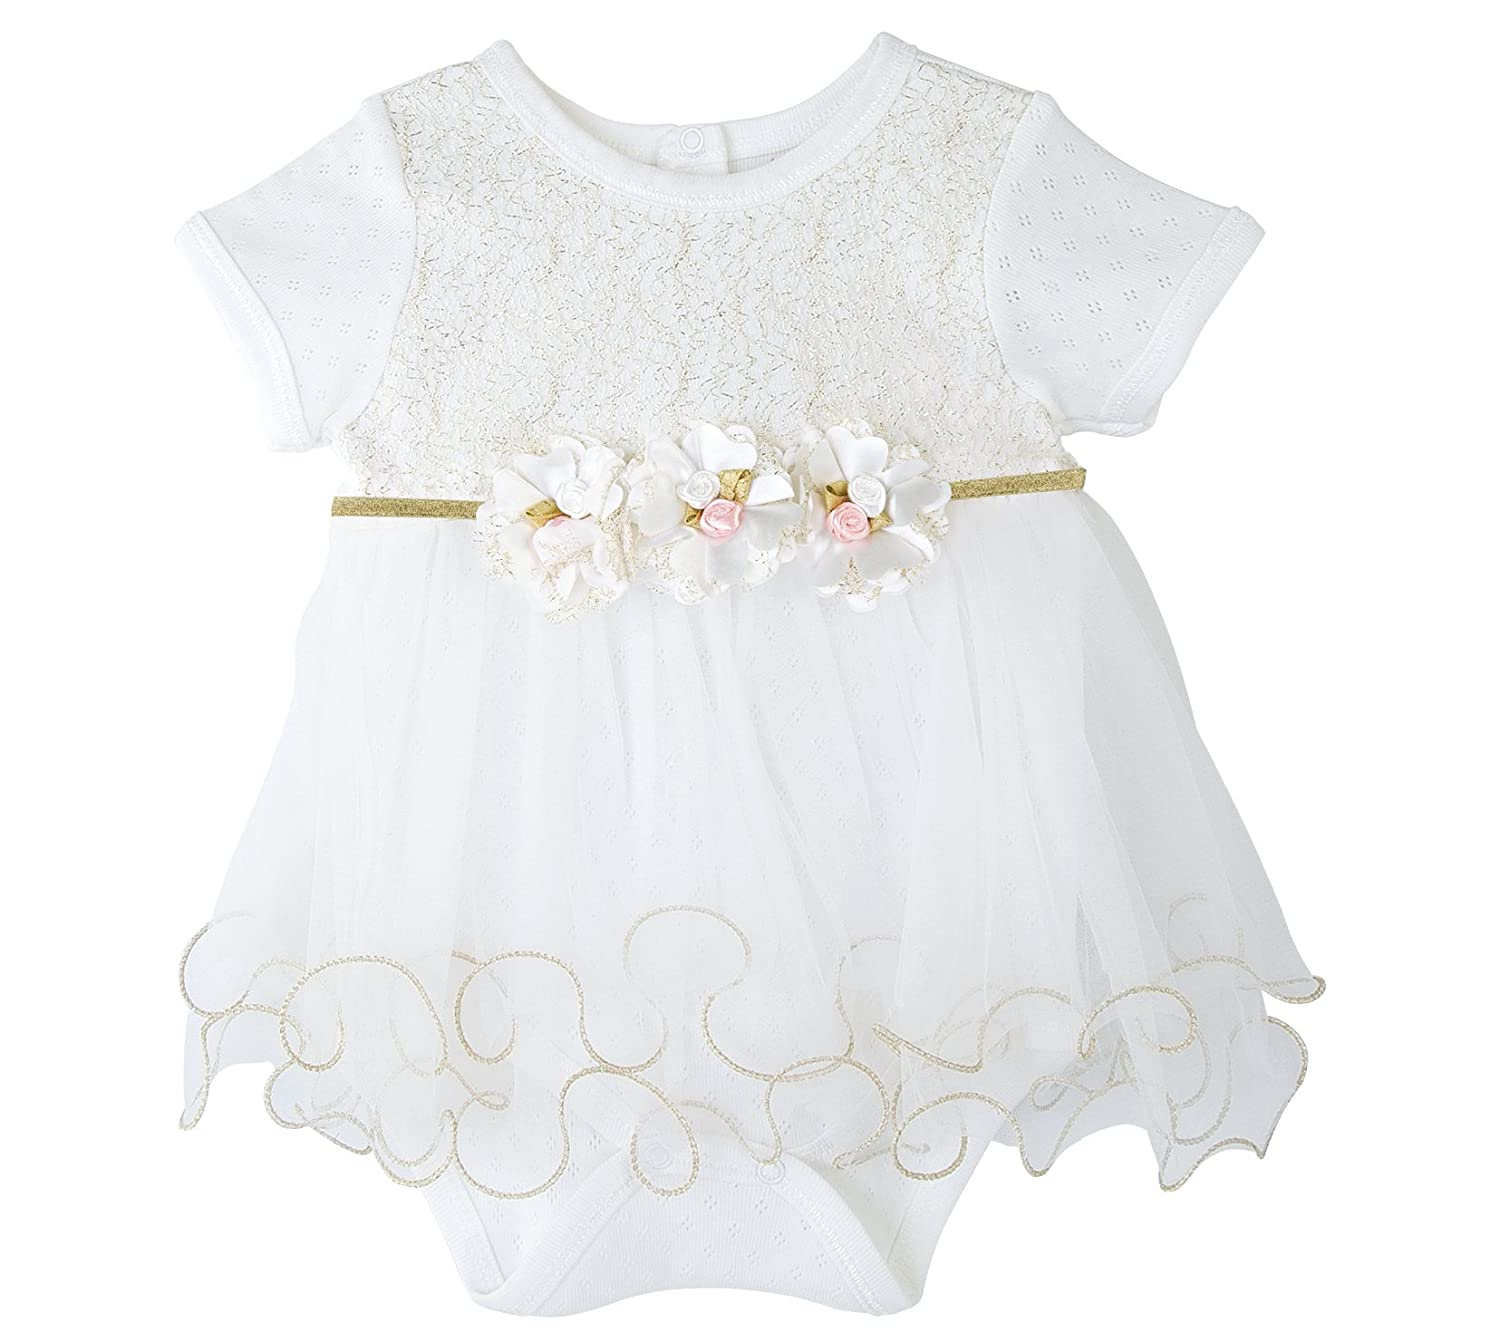 Taffy Baby Girl Newborn Gold Glitter Floral Short Sleeve Unique Tutu Bodysuit 20255